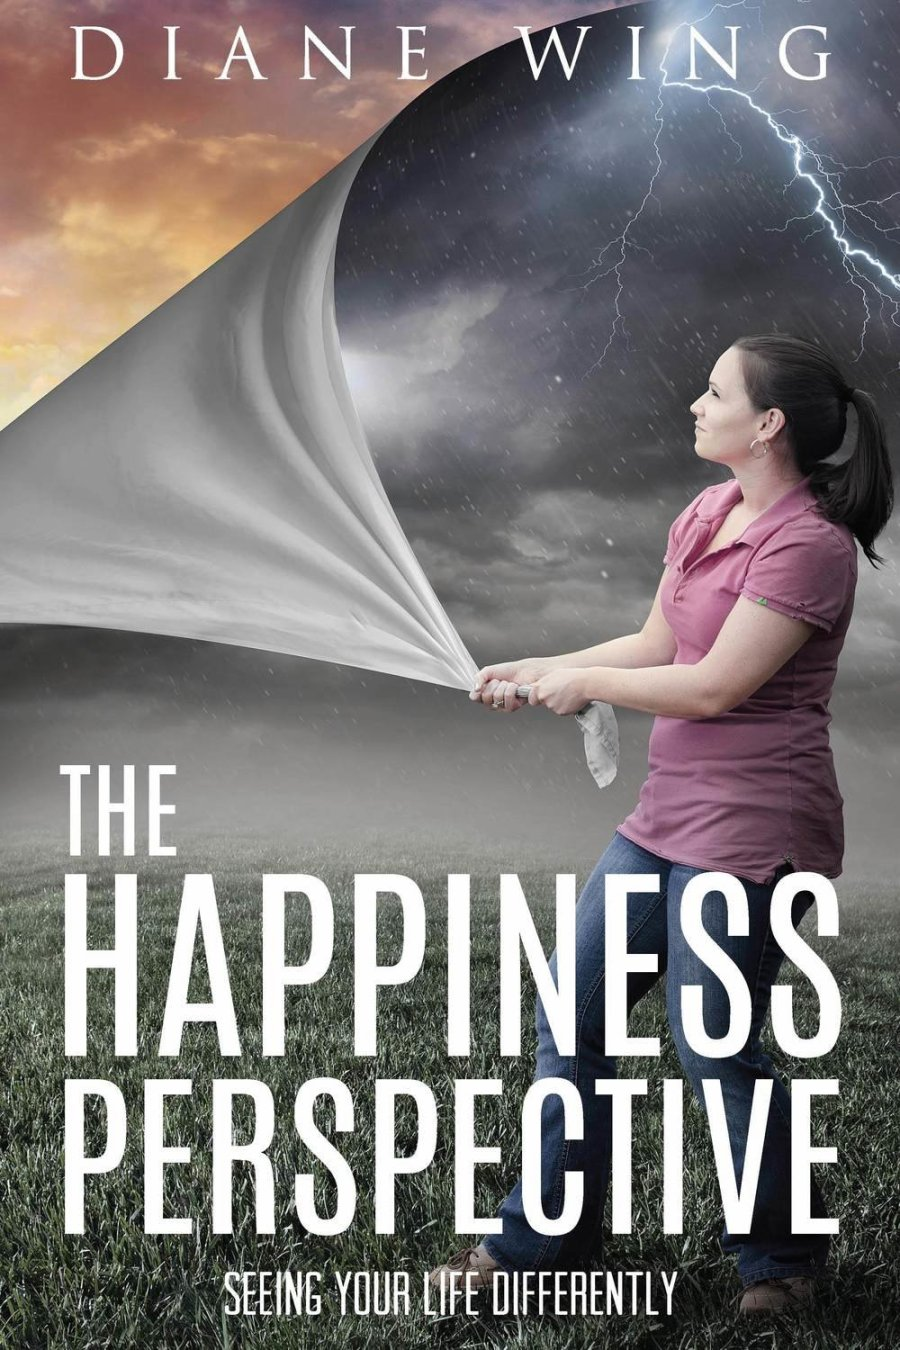 The Happiness Perspective: Seeing Your Life Differently